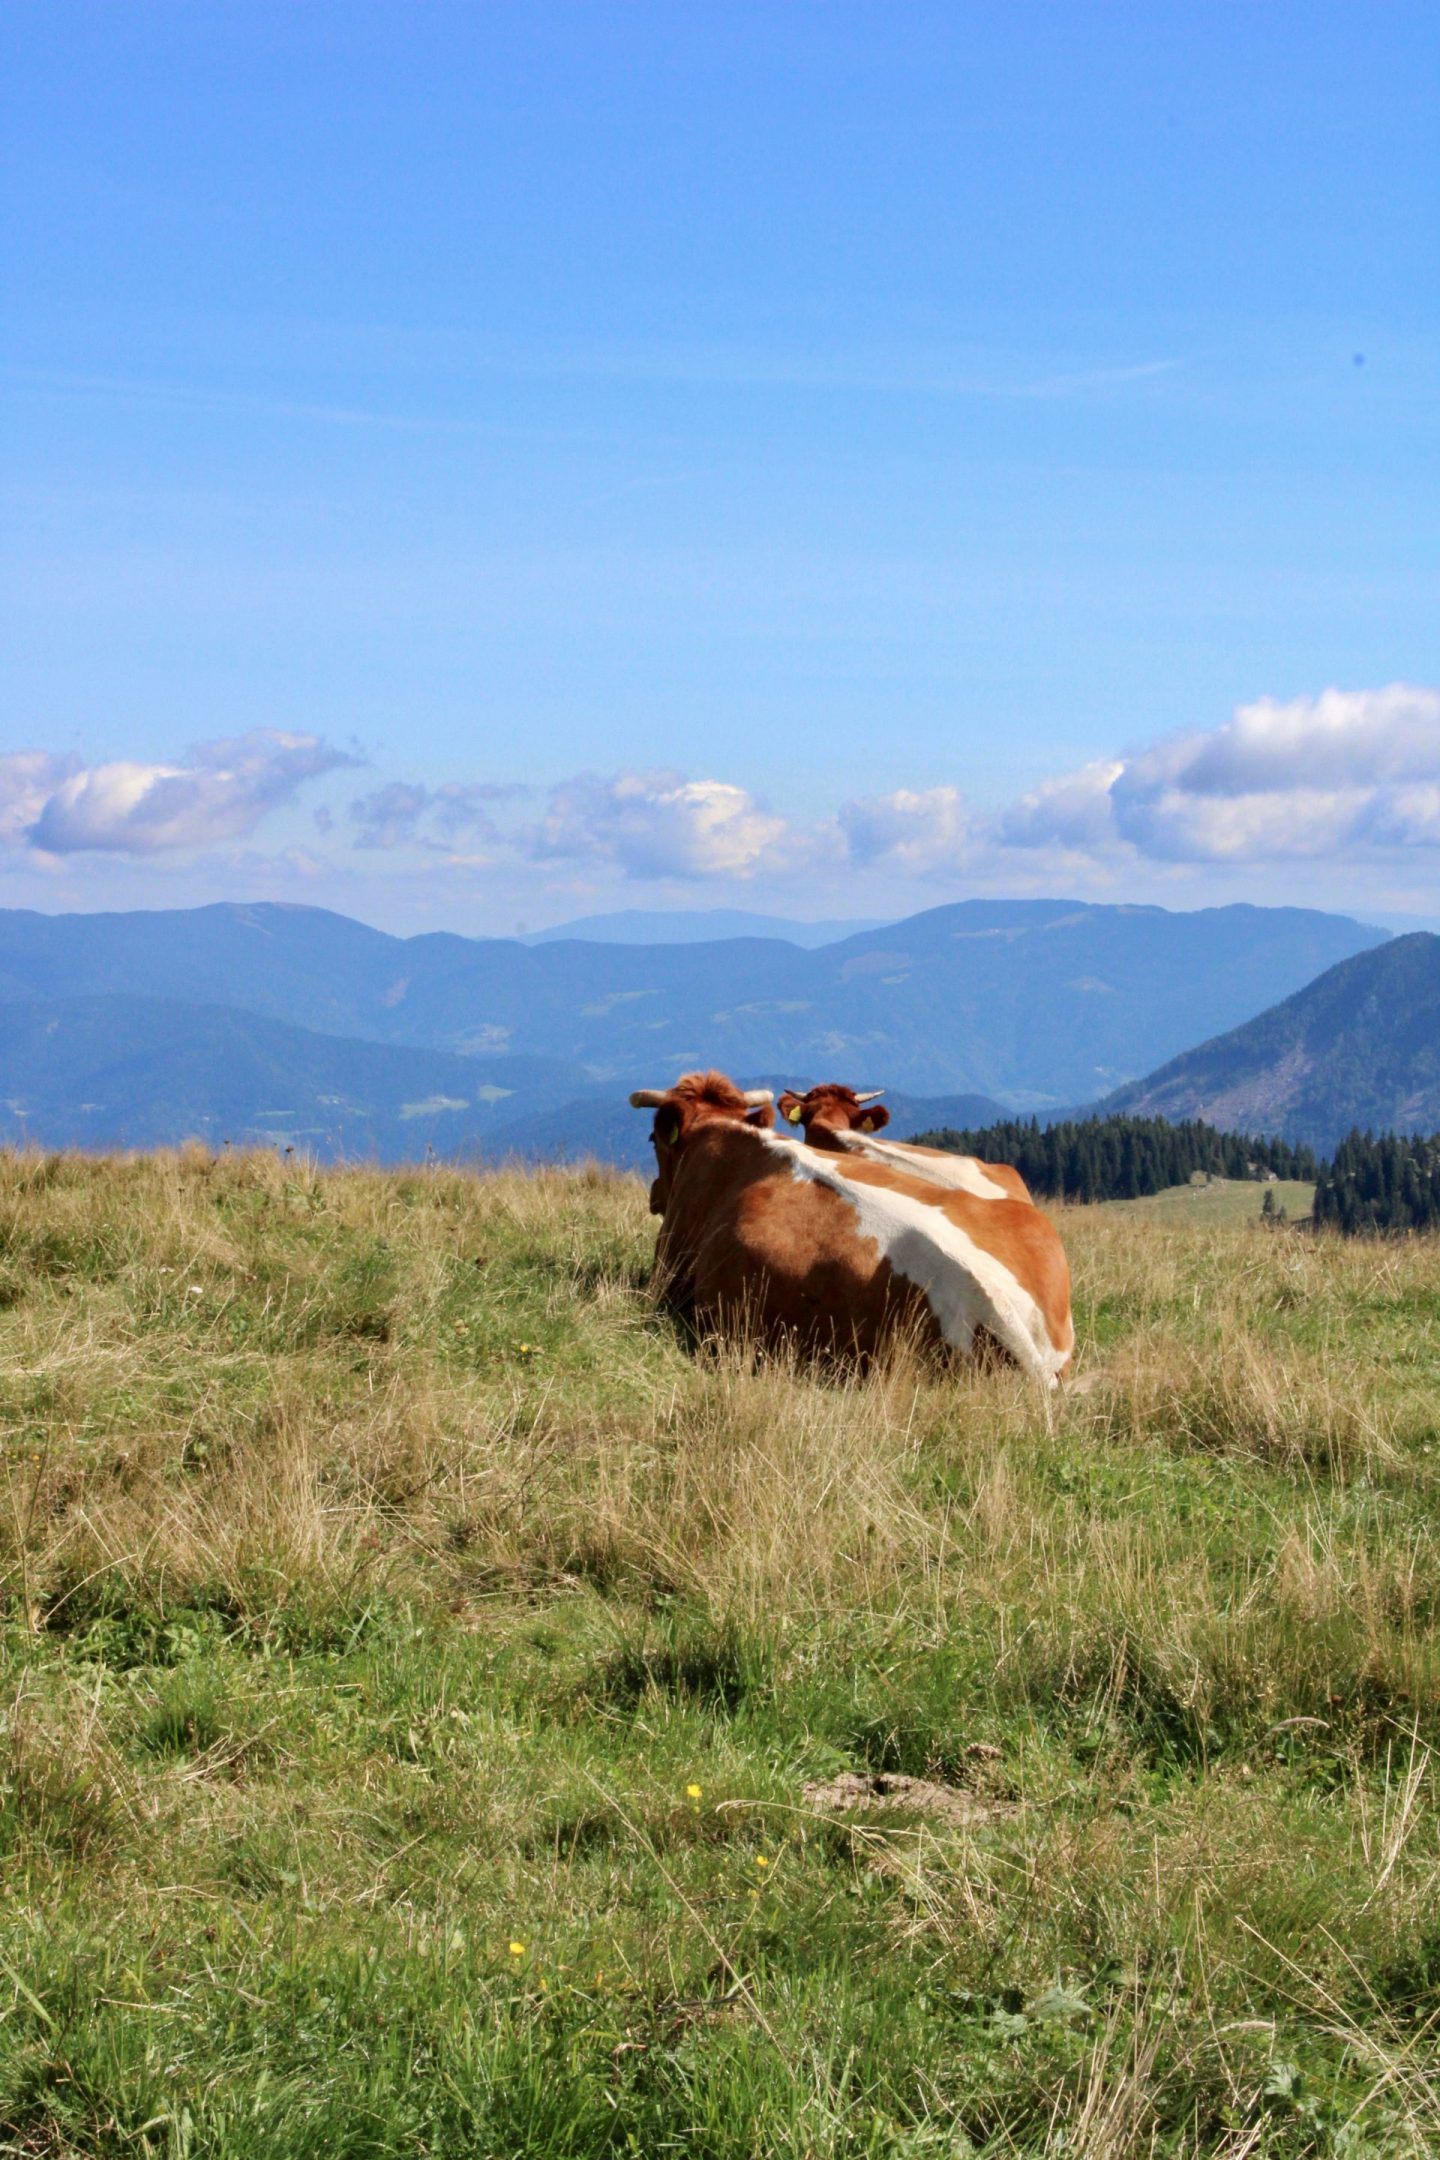 Kamnik and Velika Planina: cows looking out into the distance